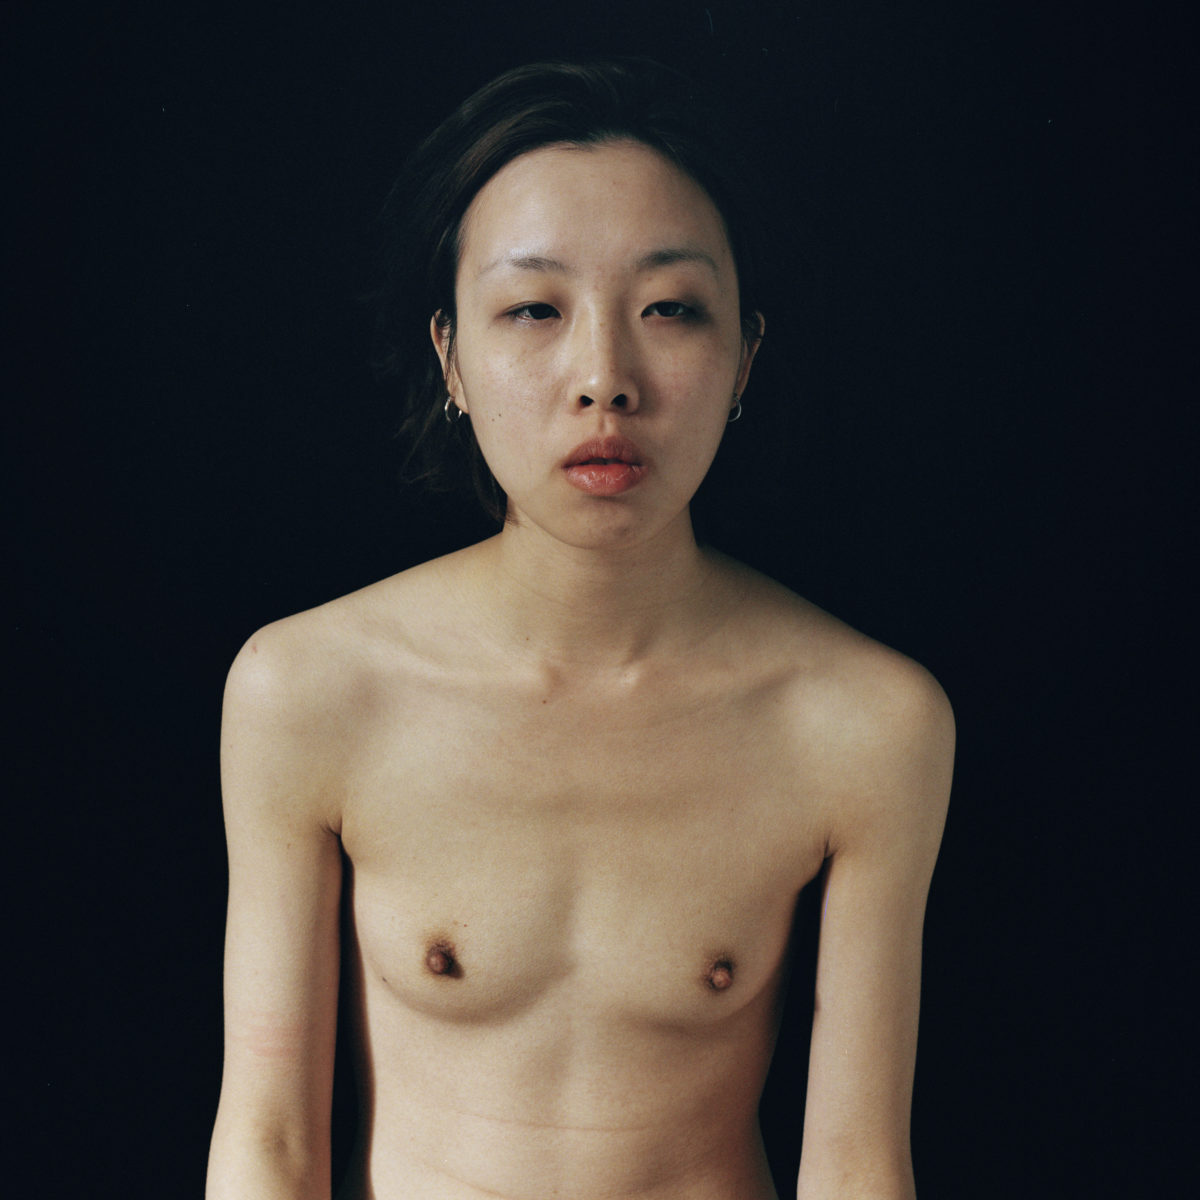 Image by Kayee Kiu, part of Terms and Conditions at Format